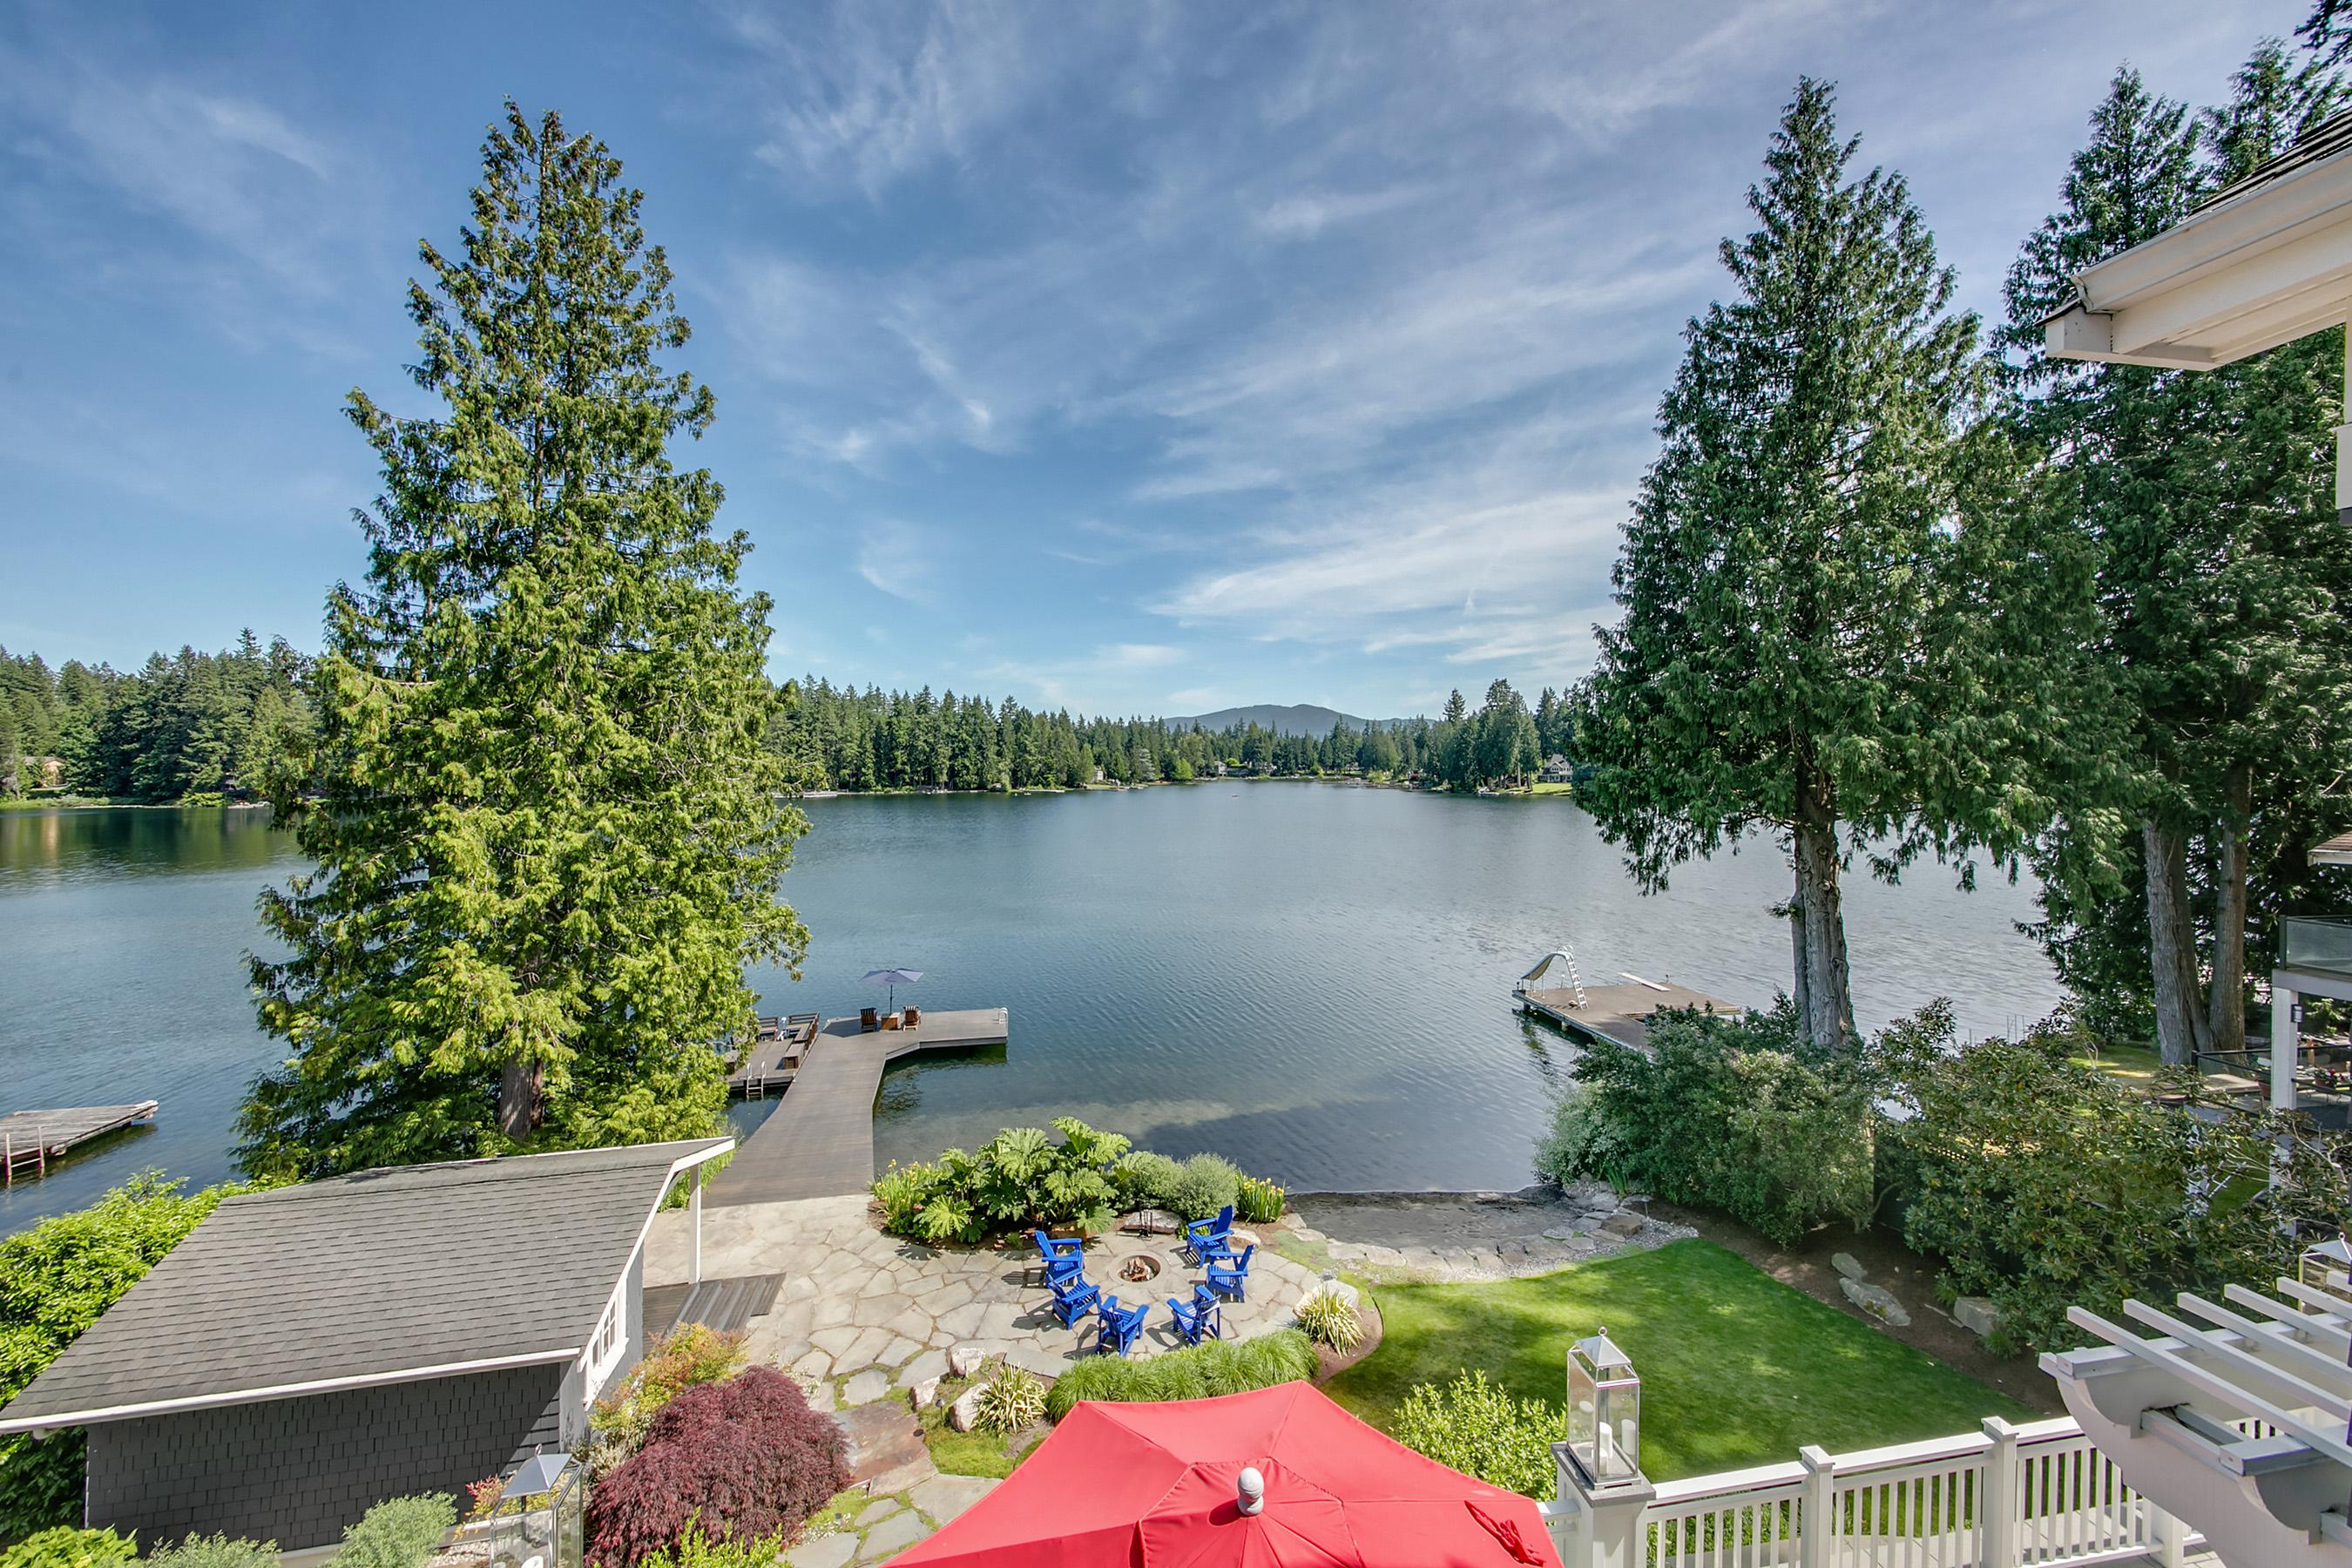 Because Pine Lake only allows electric motor boats, you can be sure you're your time relaxing on the patio won't be interrupted by the roar of gas-powered boats.